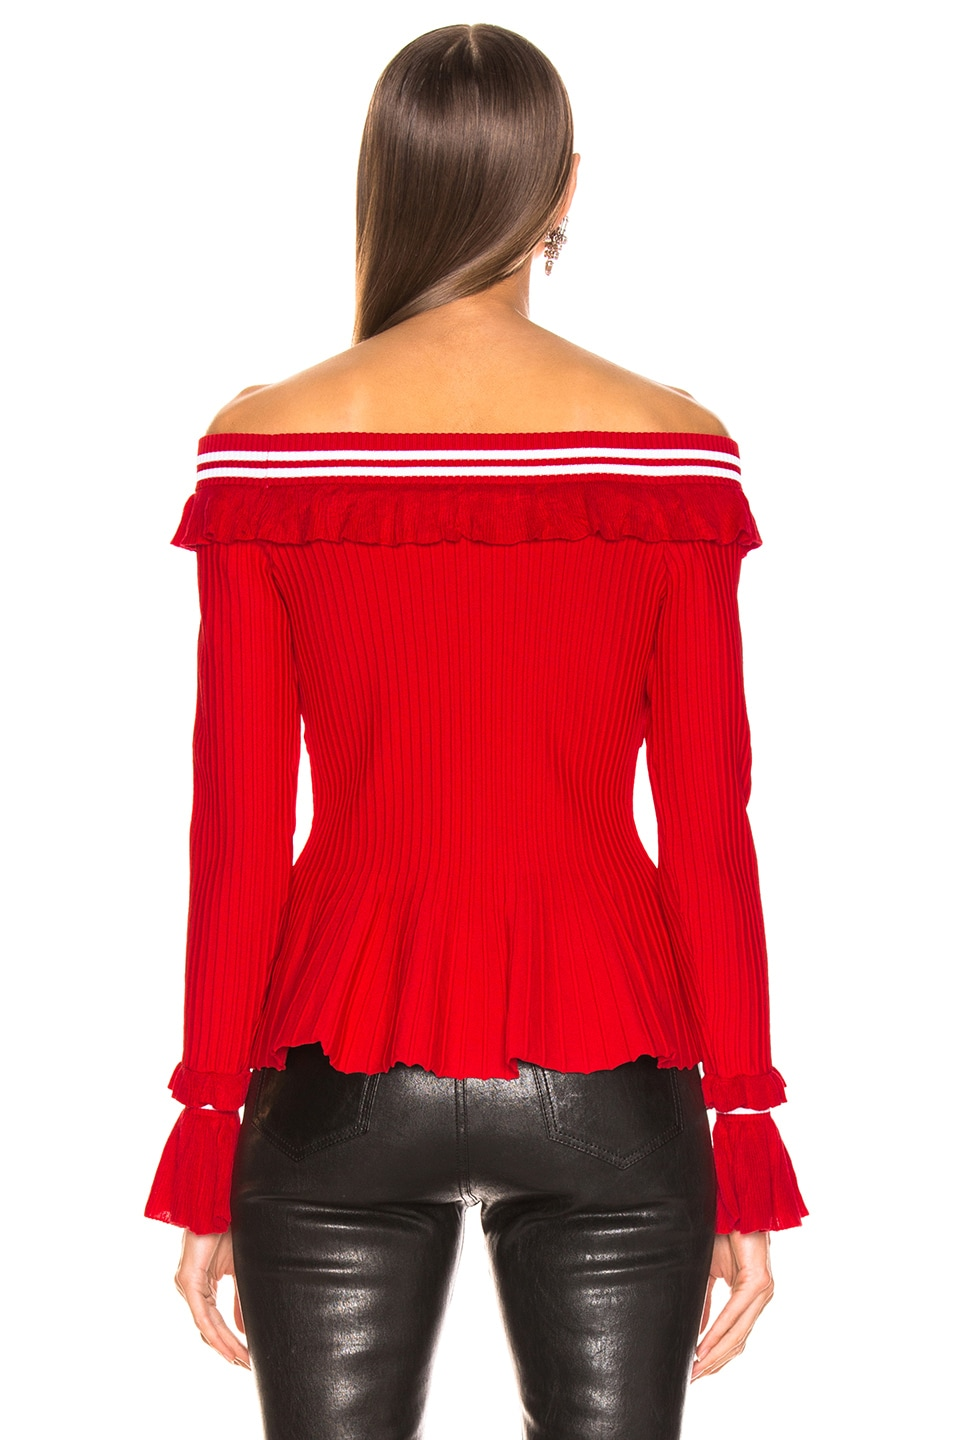 Image 3 of JONATHAN SIMKHAI for FWRD Off the Shoulder Ruffle Top in Red & White